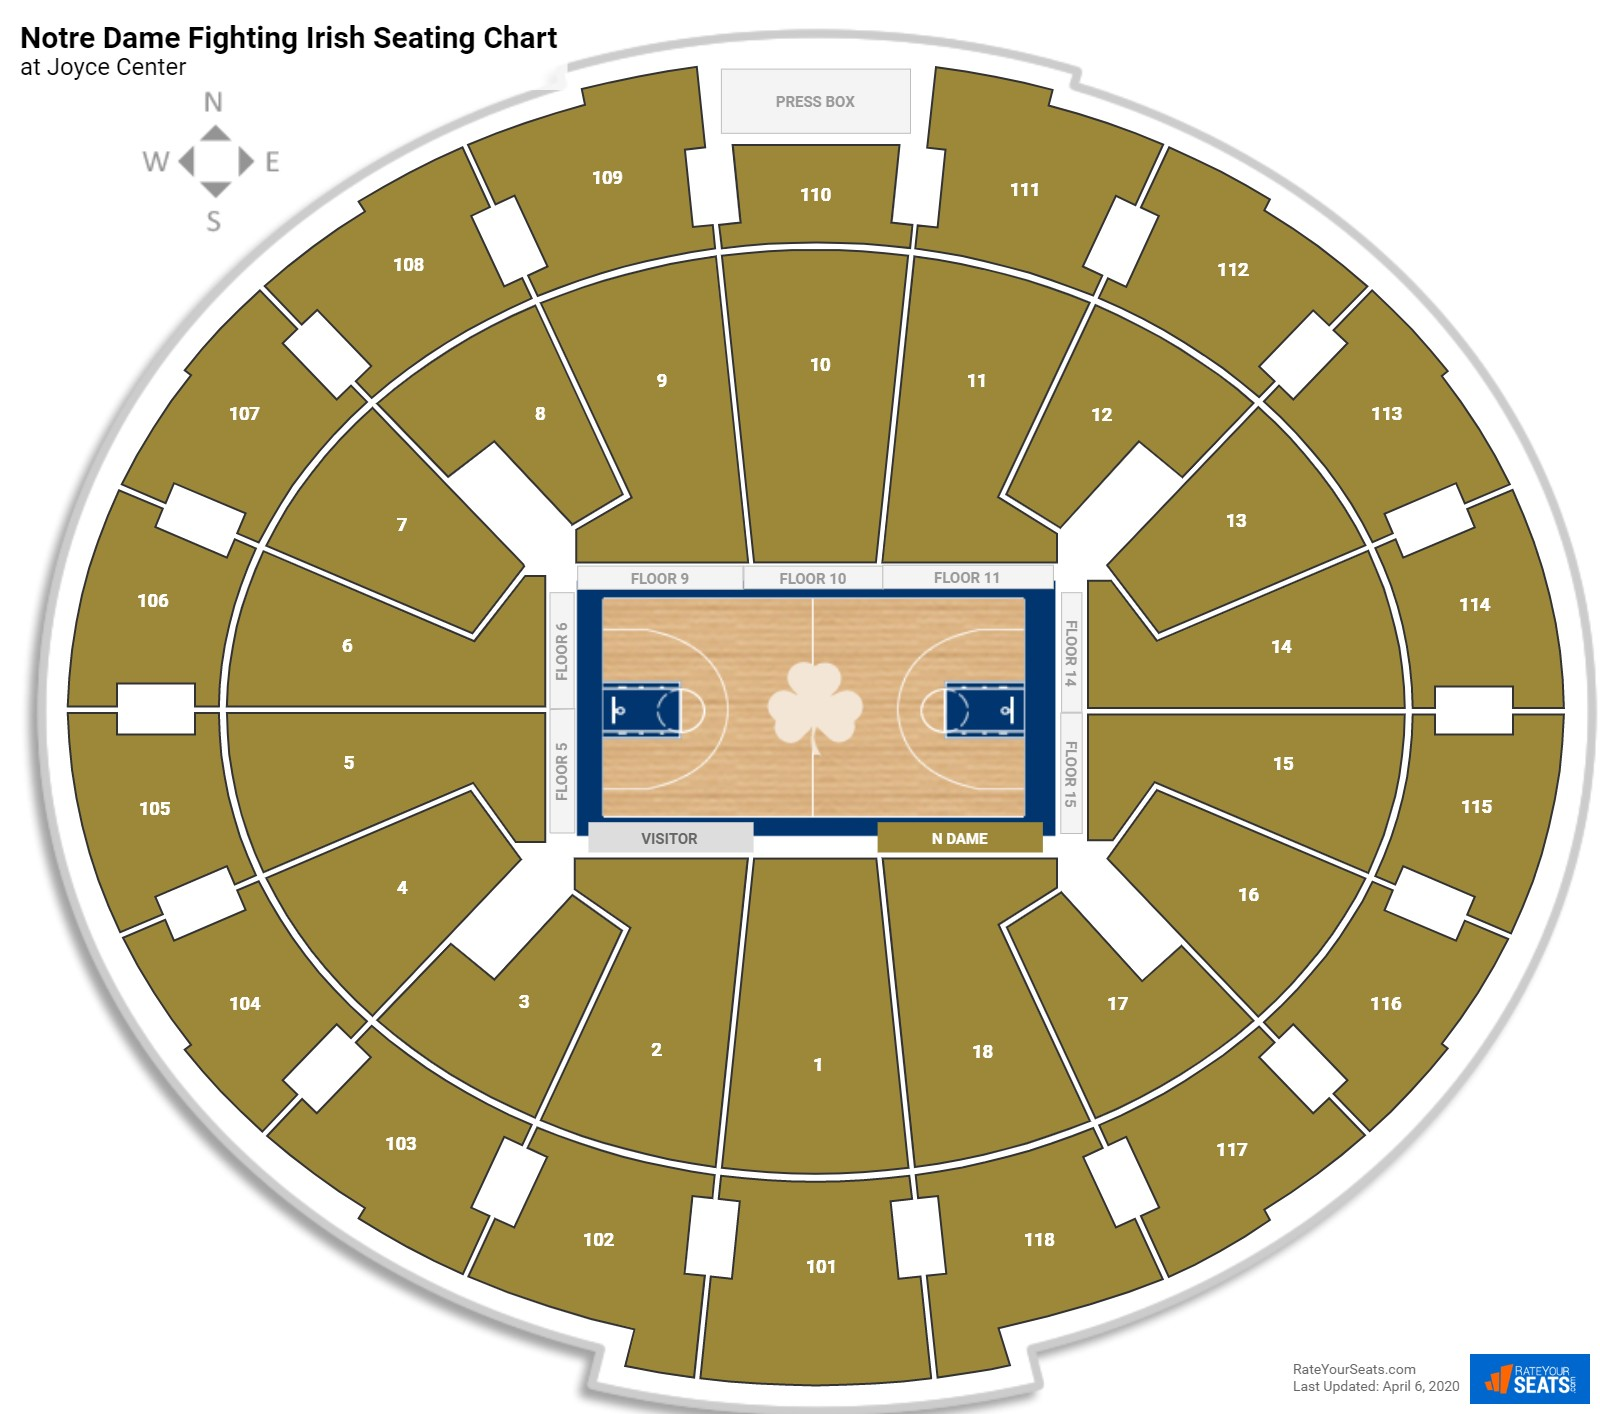 Notre Dame Basketball Seating Chart